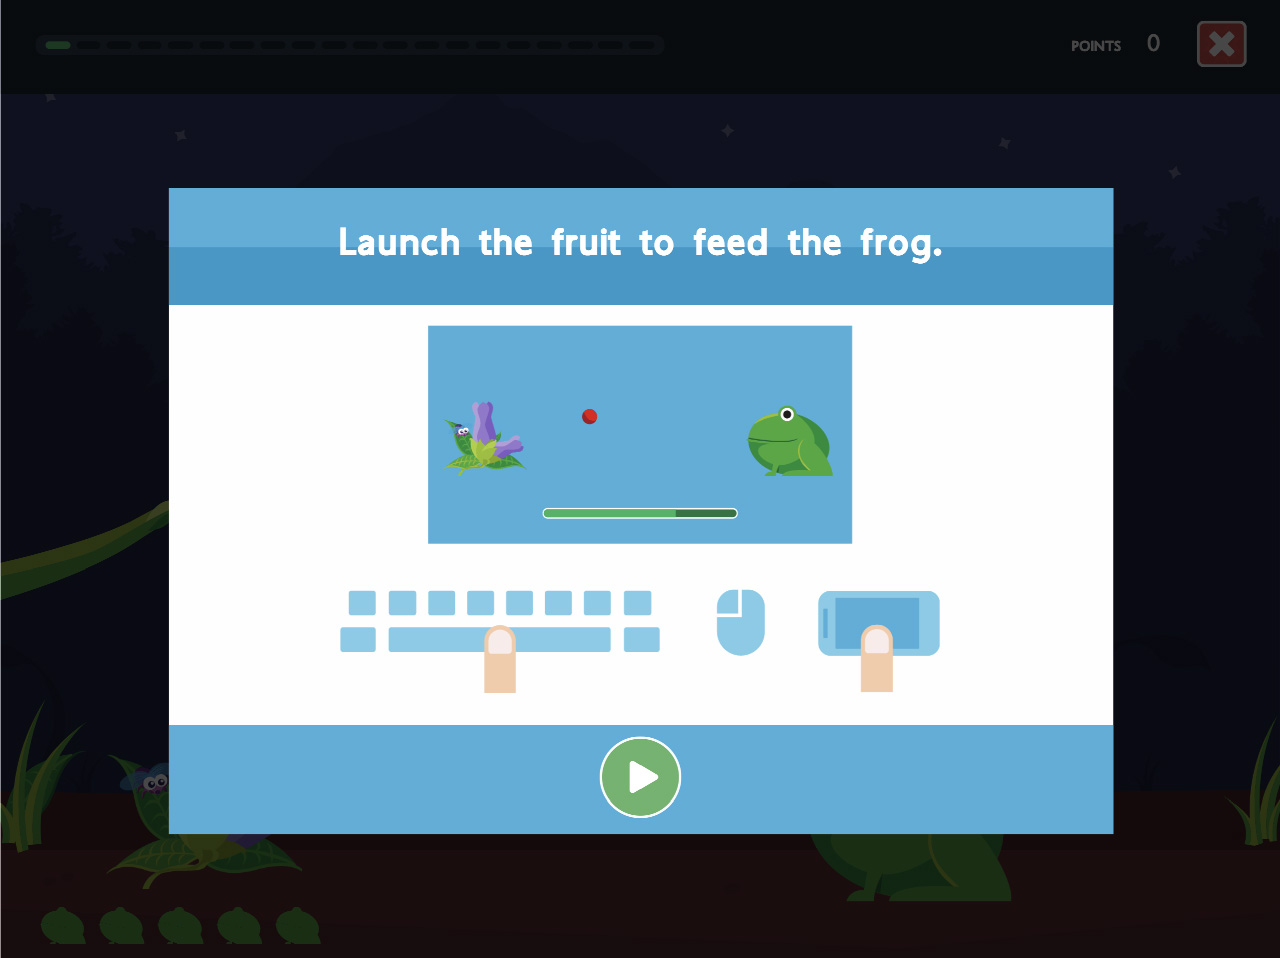 Feed the frog instruction screen